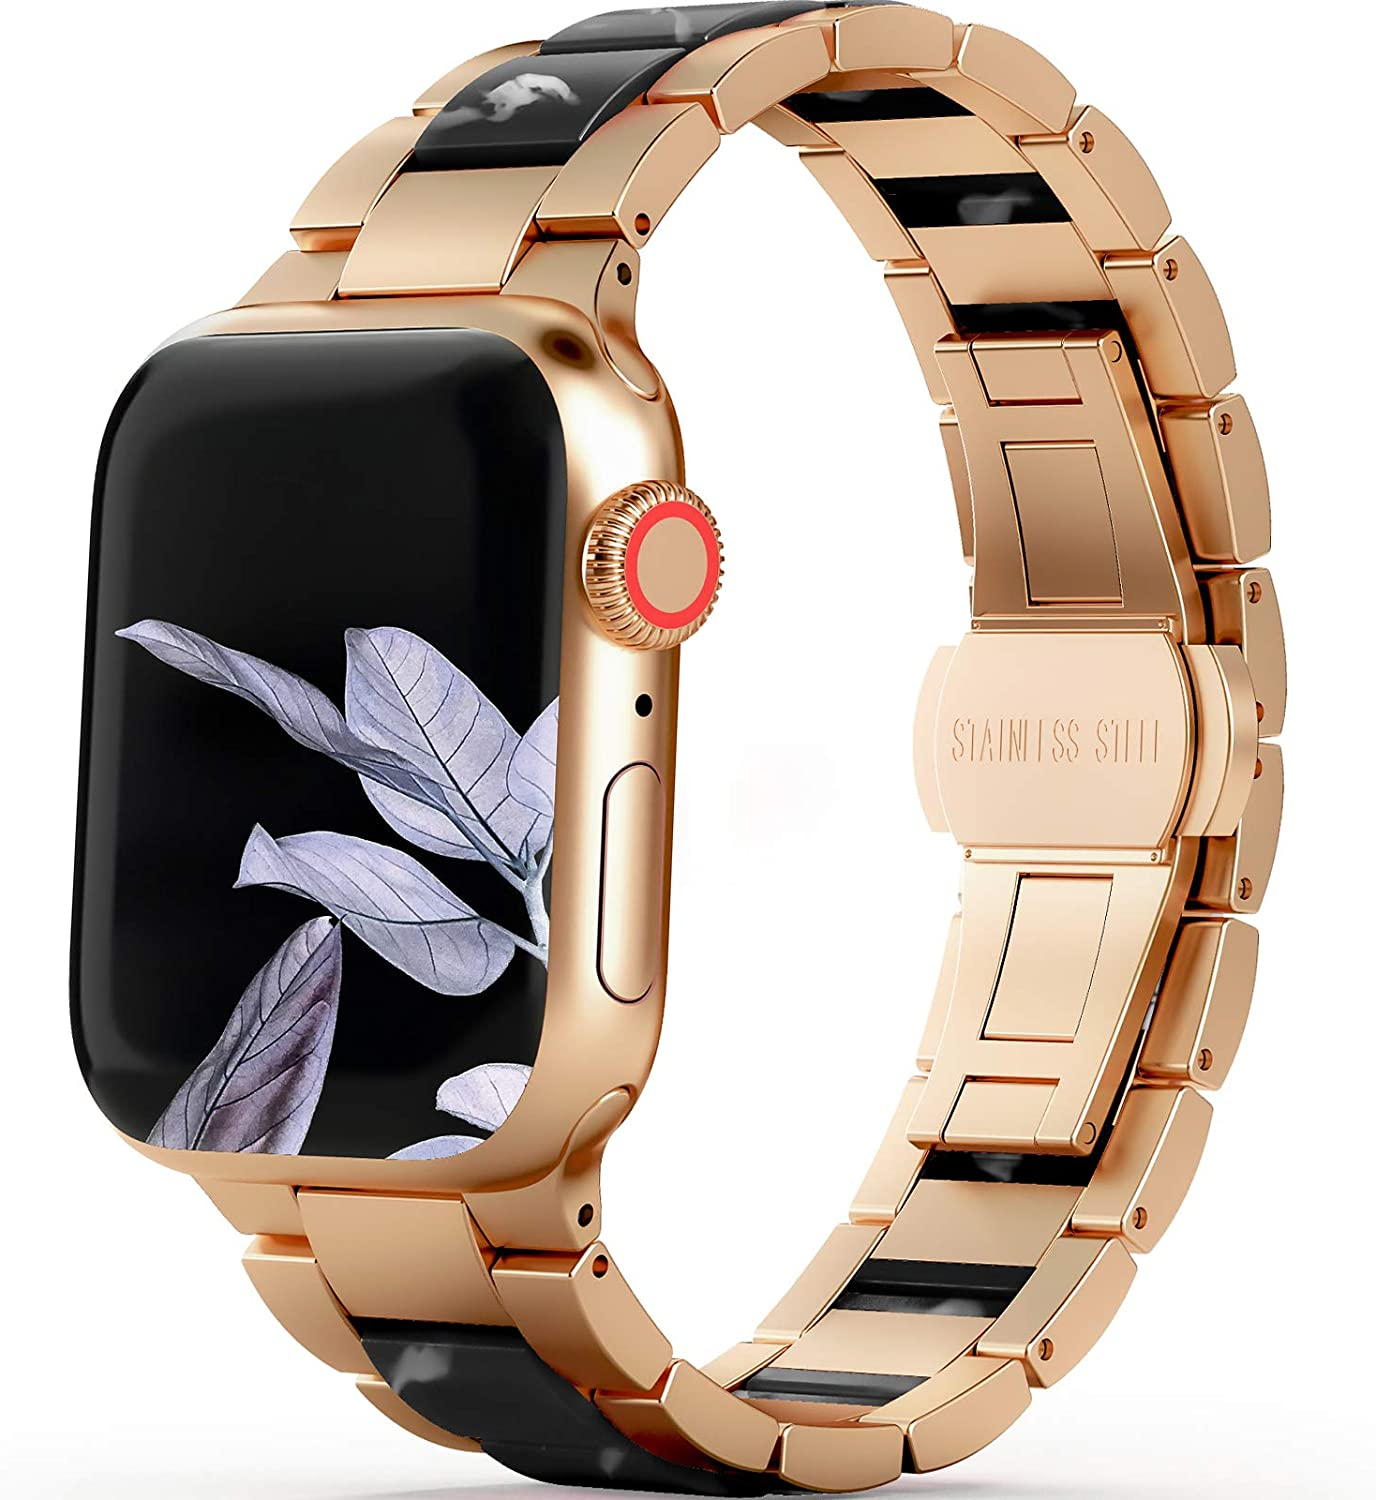 WILNARA Resin Band Compatible Apple Watch Bands 38mm 40mm 42mm 44mm for Women Men, Luxury Rose Gold Stainless Steel Metal and Vibrant Resin Wristbands Strap Bracelet for iWatch Series 6 5 4 3 2 1 SE